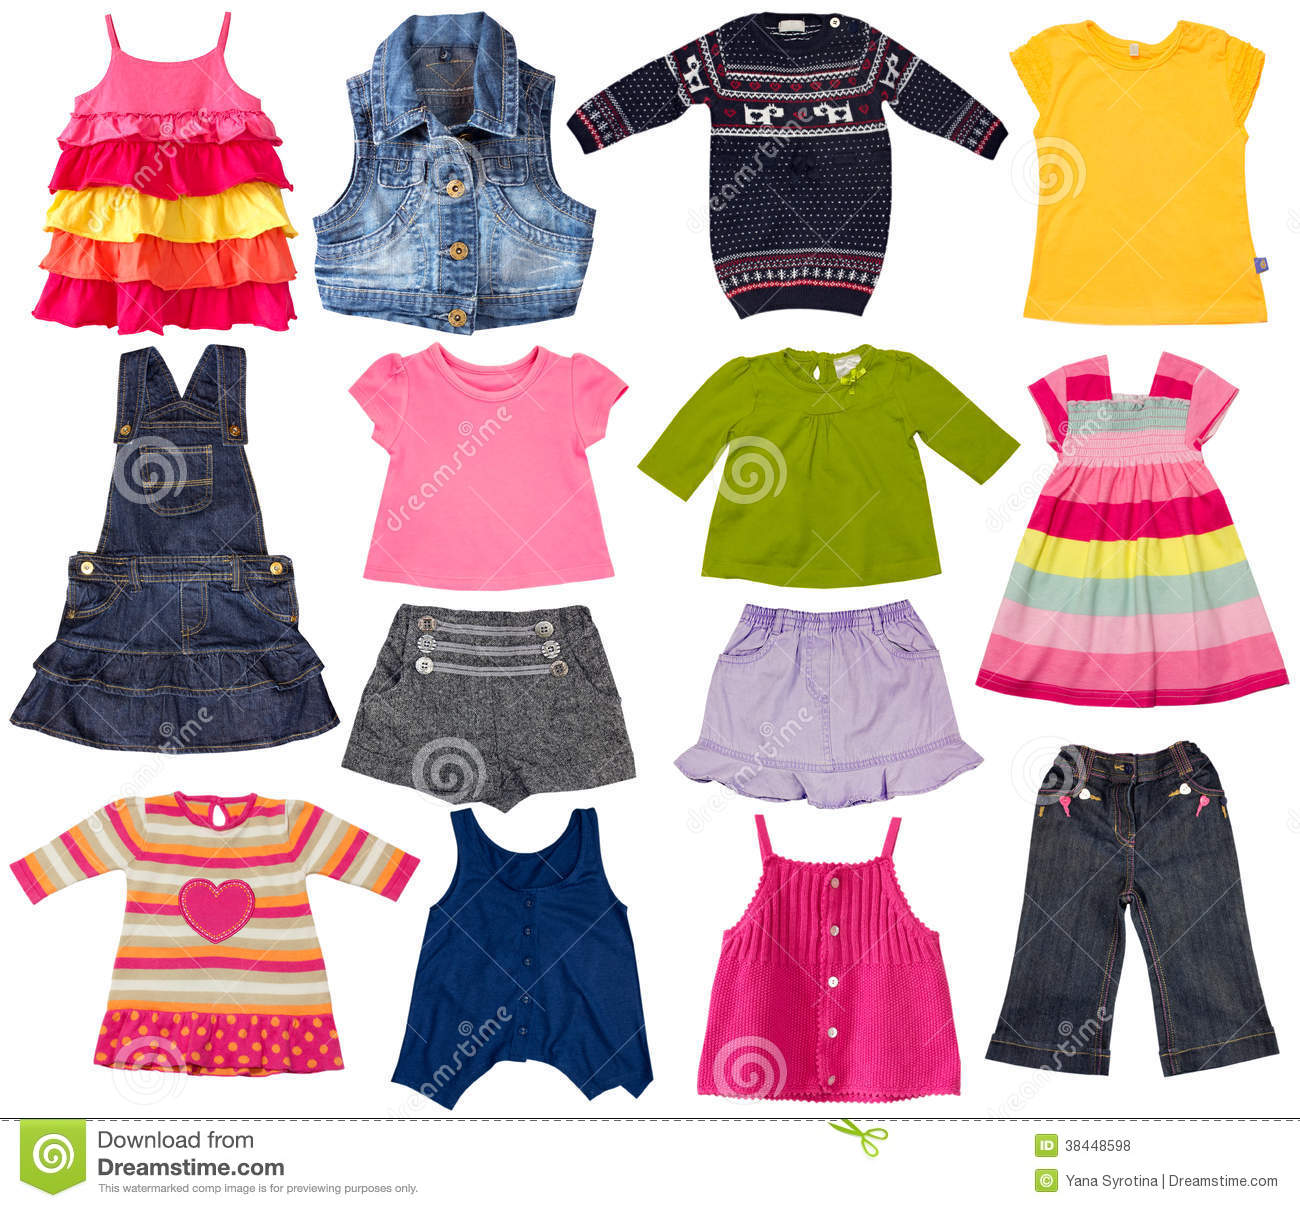 e36119cef Store For Kids Clothing Near Me KidsFashionToddler Kids Fashion